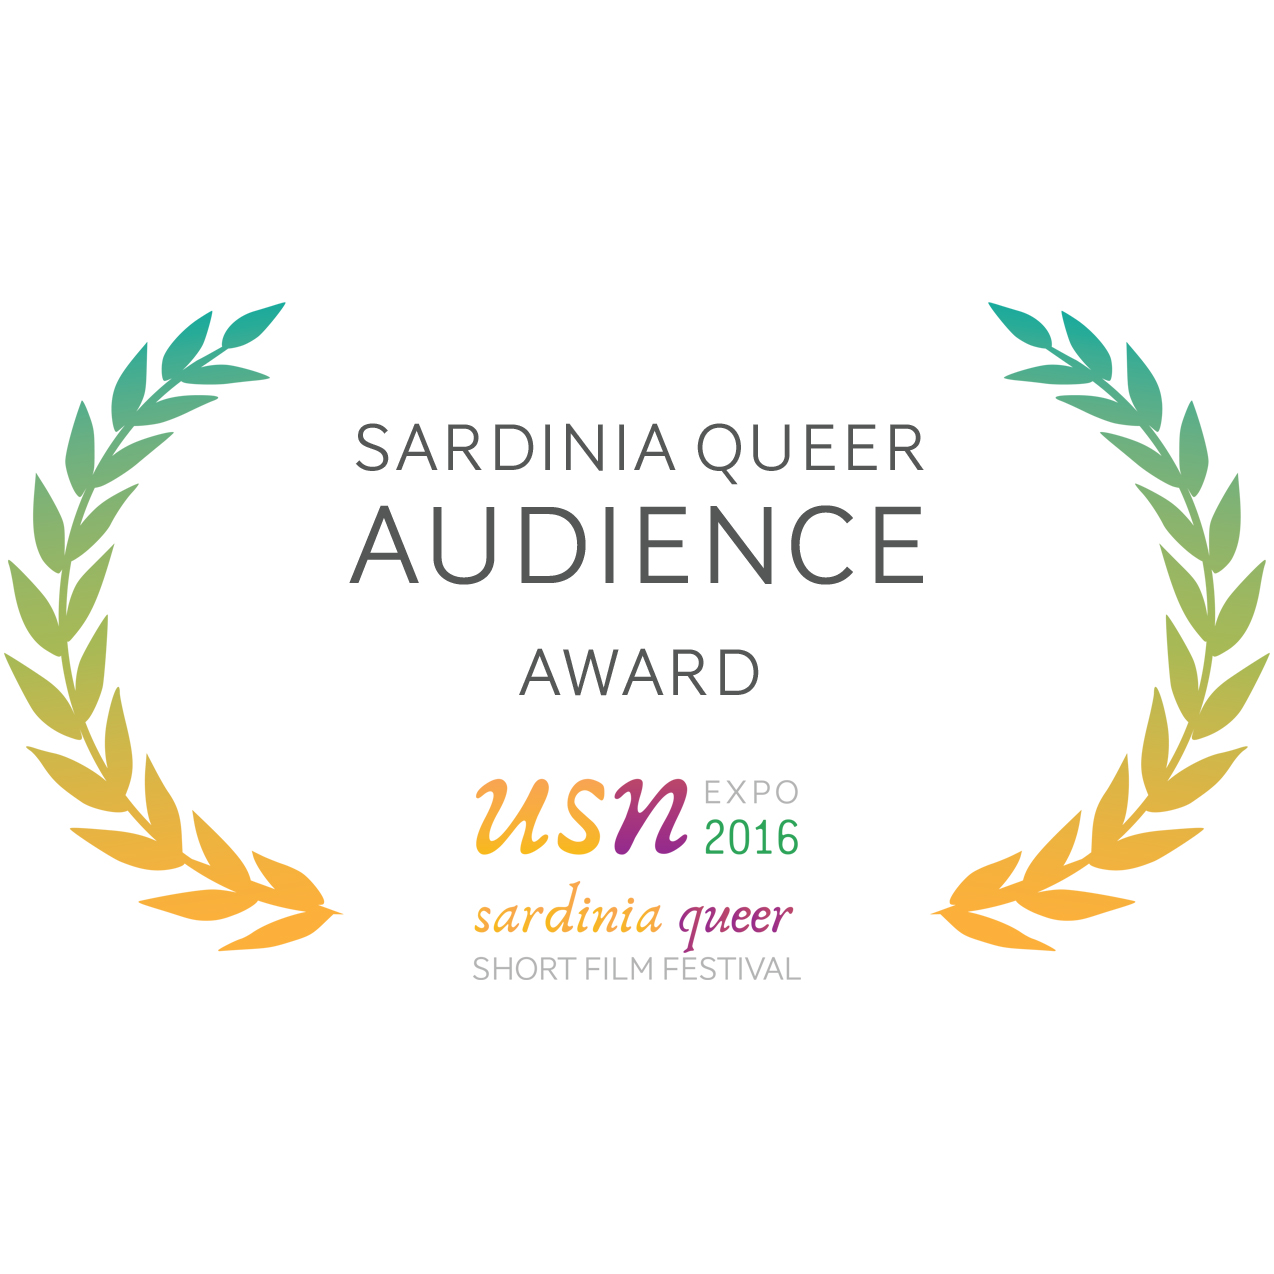 Sardinia Queer Audience Award 2